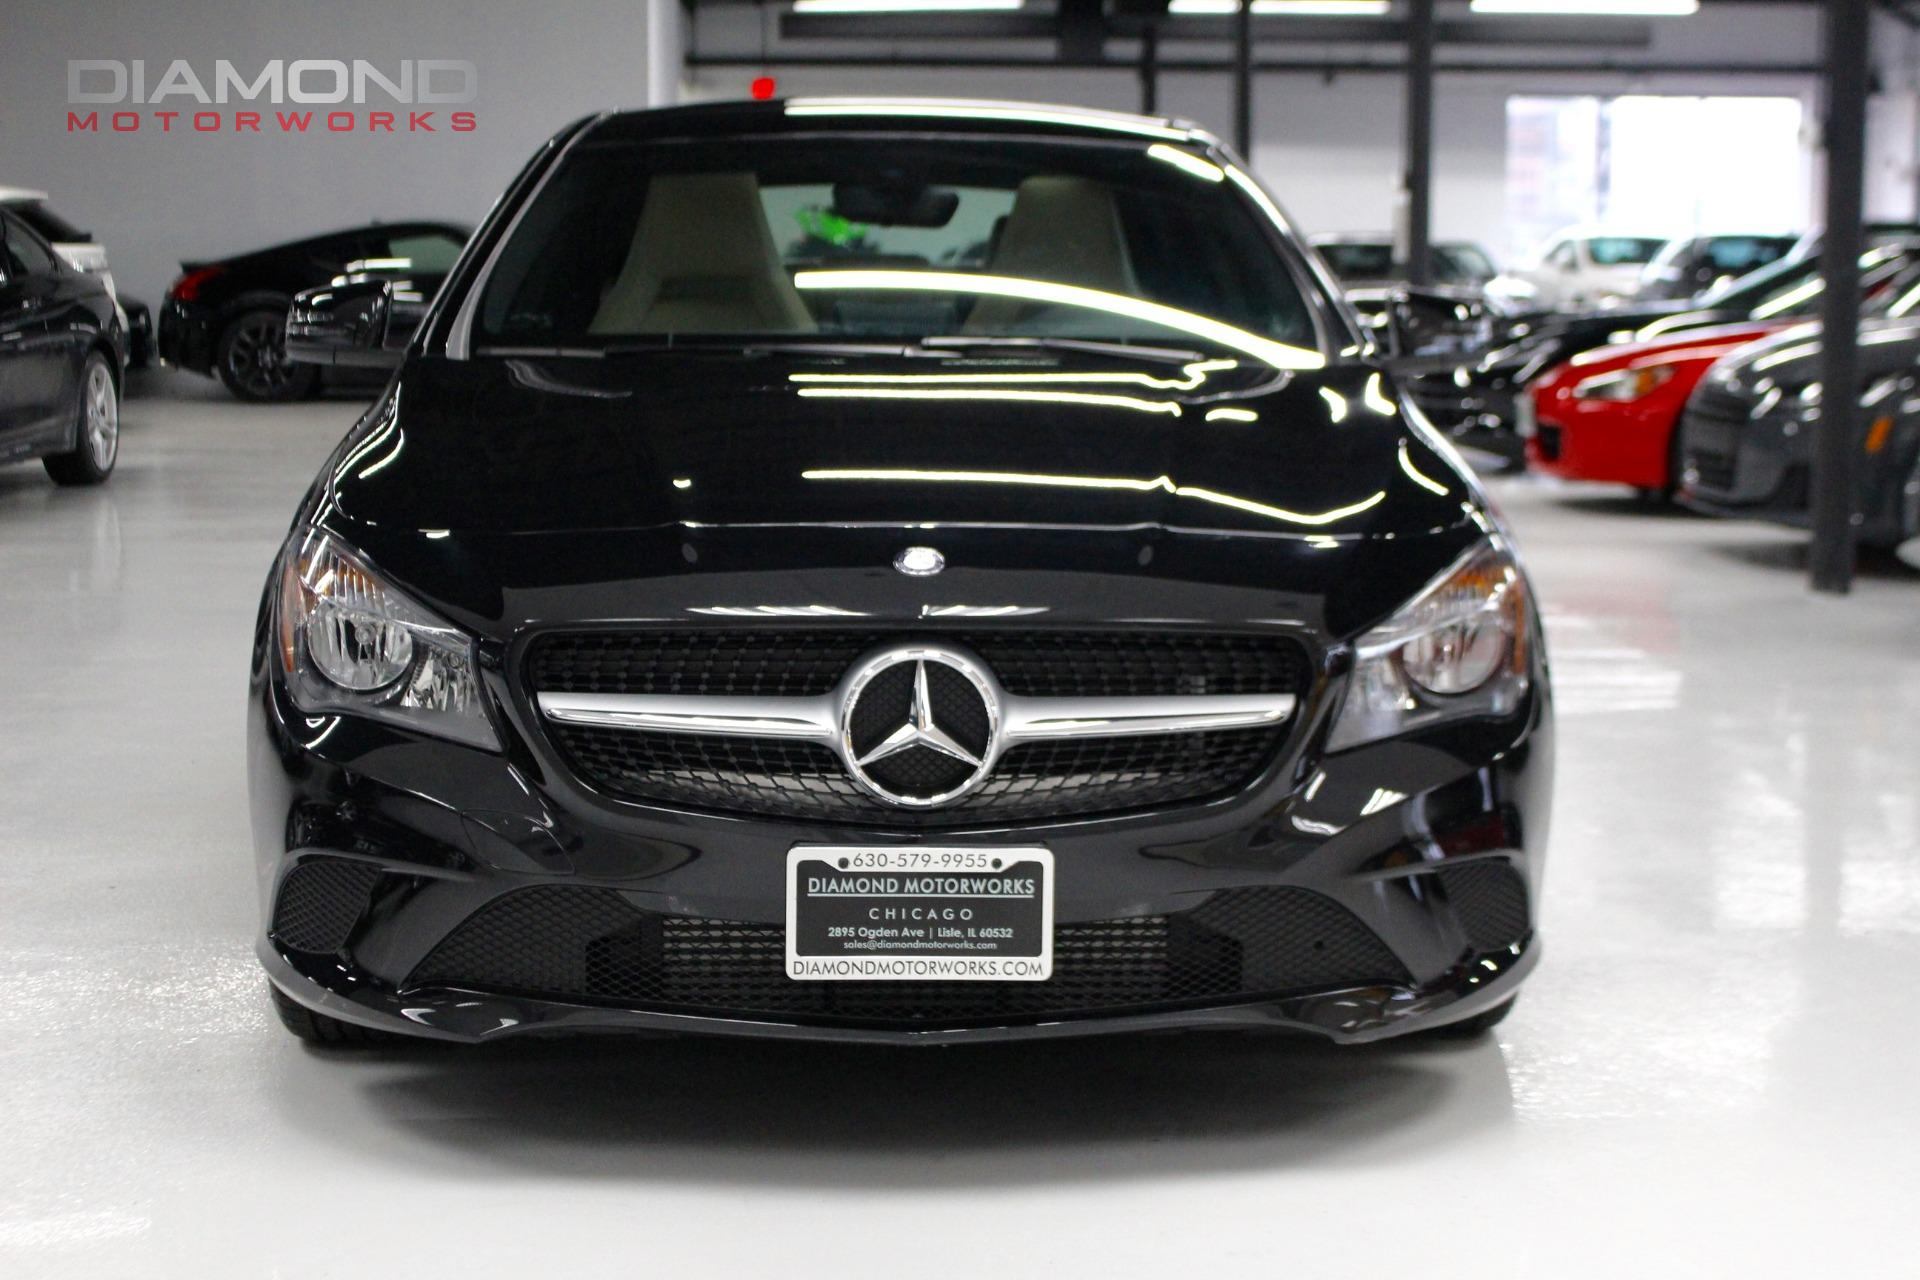 2015 mercedes benz cla cla 250 4matic stock 175292 for for 2015 mercedes benz cla 250 price